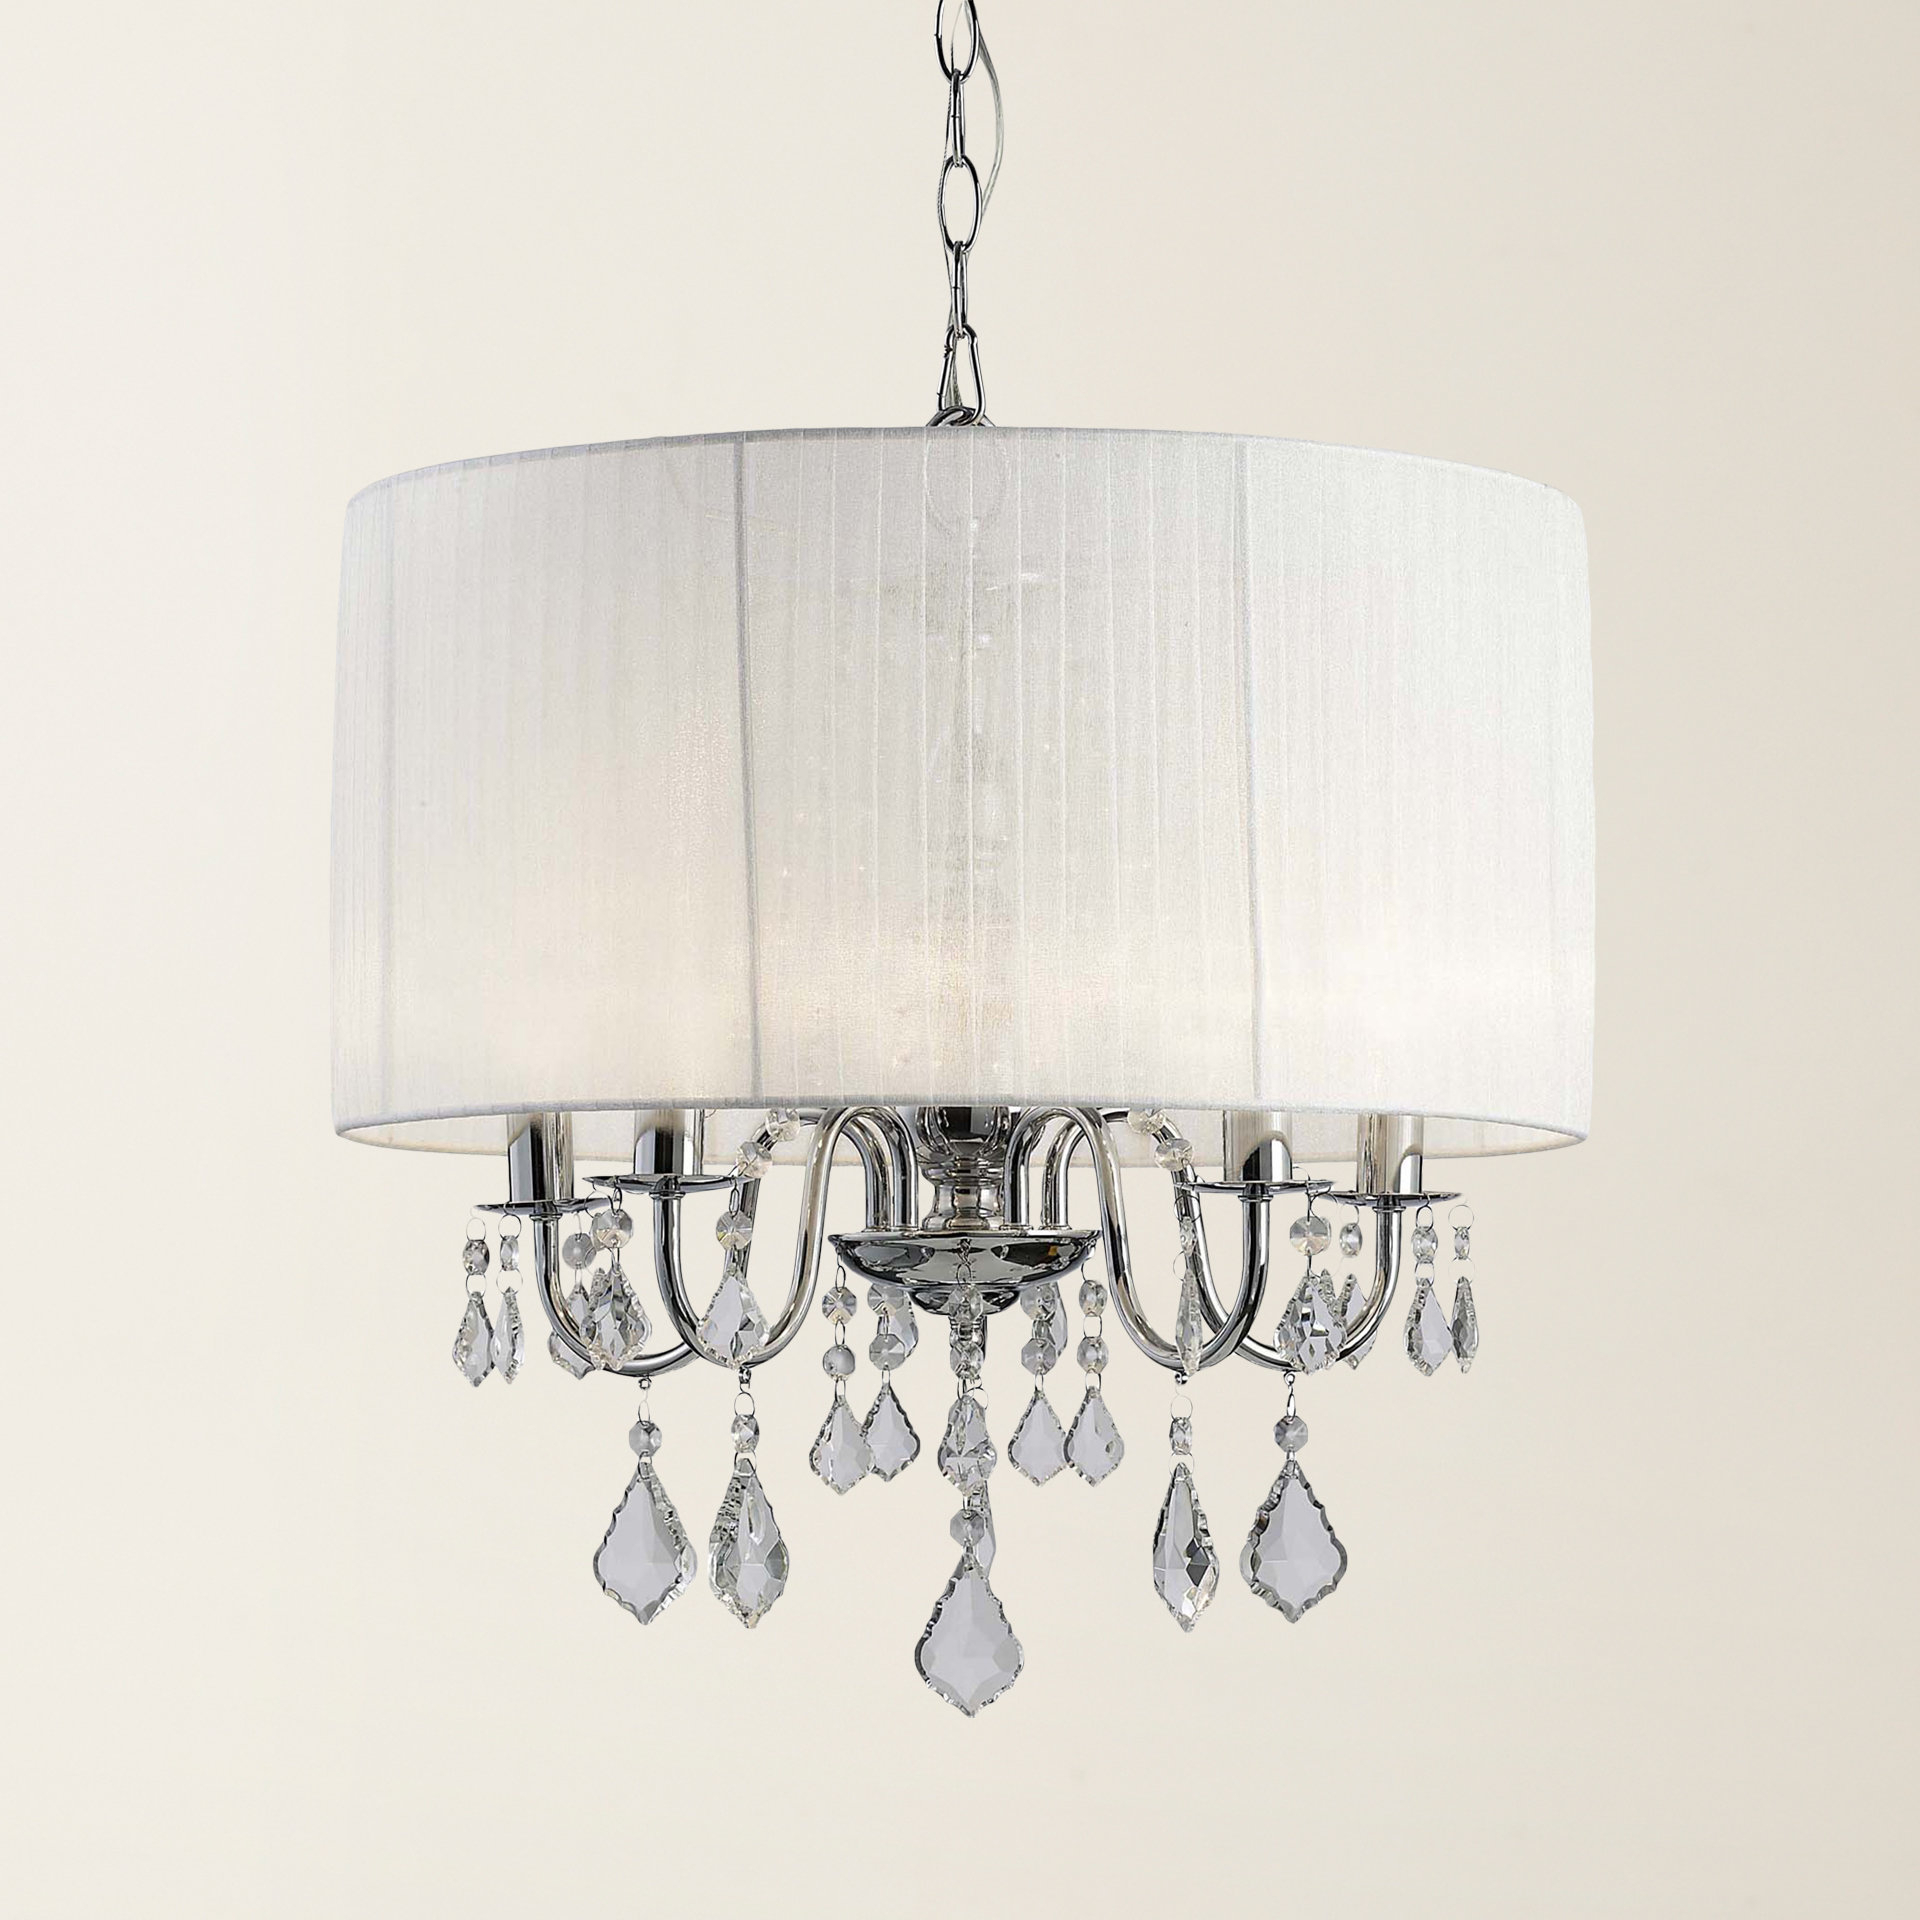 Lindsey 4 Light Drum Chandeliers Within Fashionable Buster 5 Light Drum Chandelier (View 12 of 20)